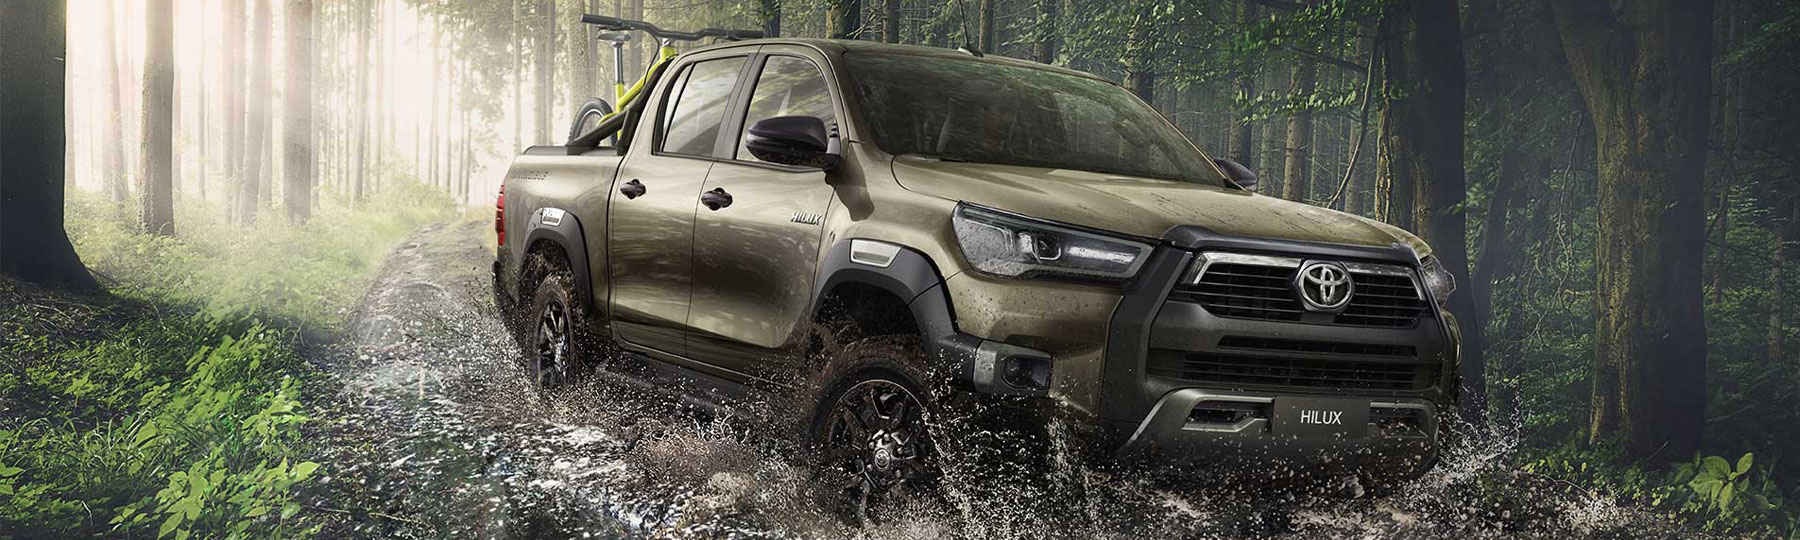 New Toyota Hilux New Van Offer